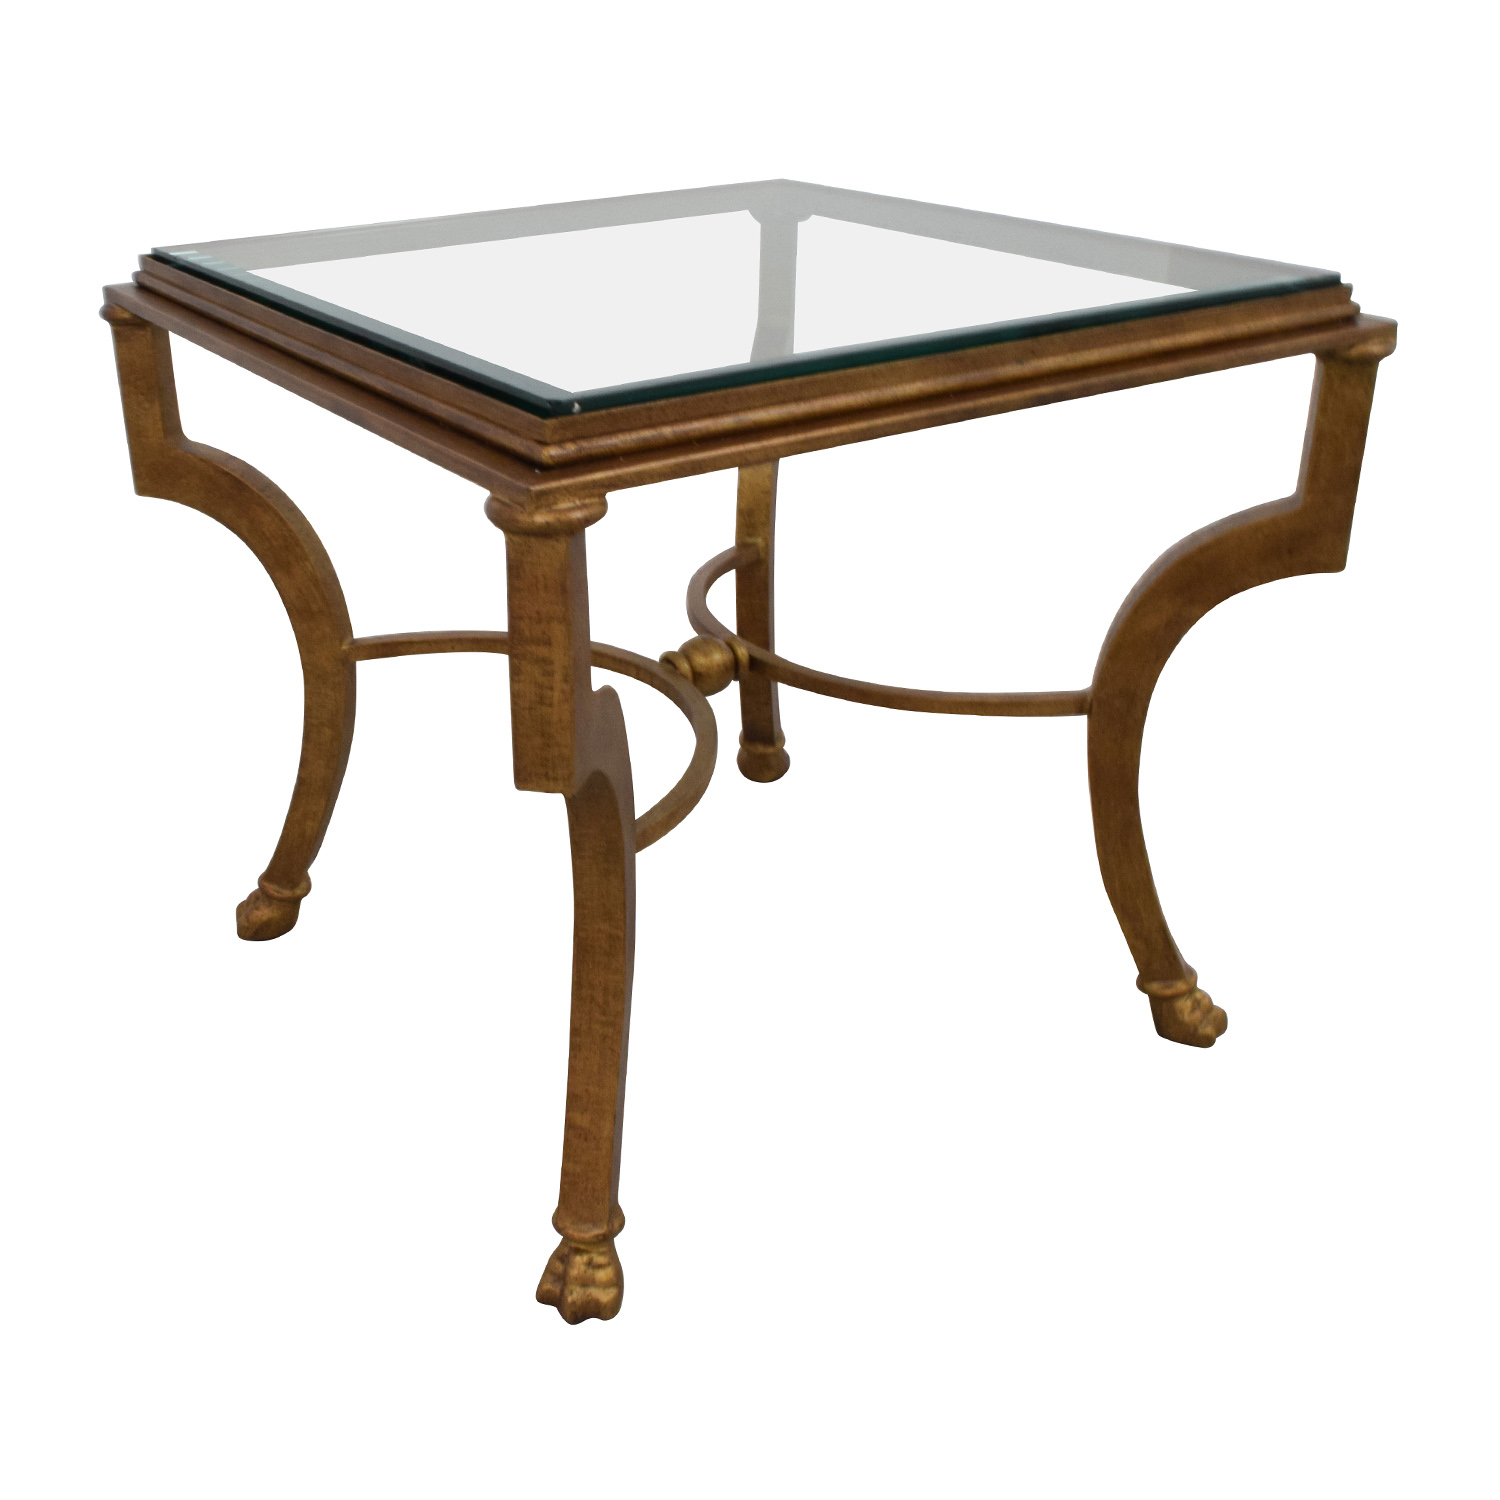 69 Off Square Antique Gold Side Table With Glass Top